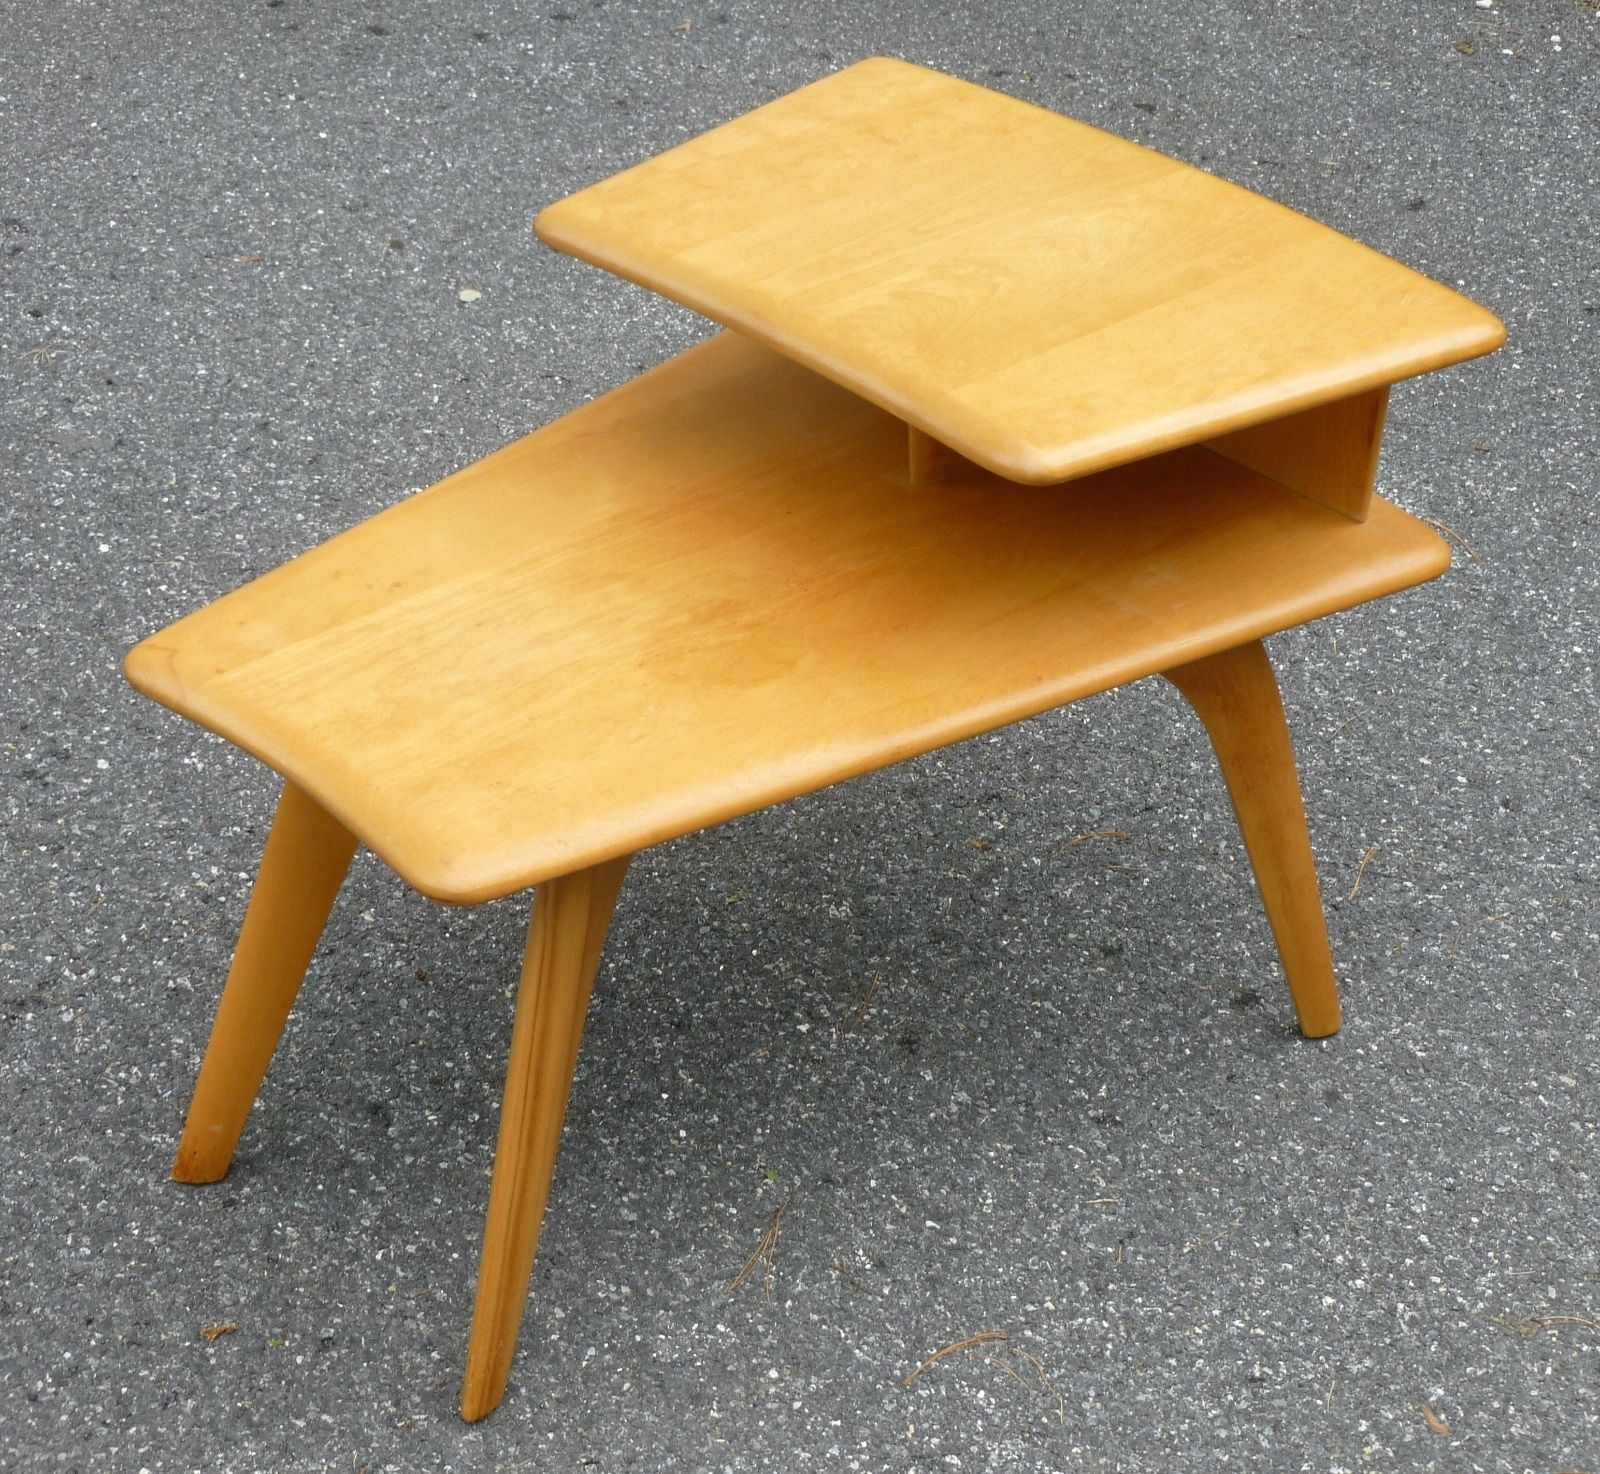 Sold for $275 in July 2015 RARE Heywood Wakefield WEDGE Shaped